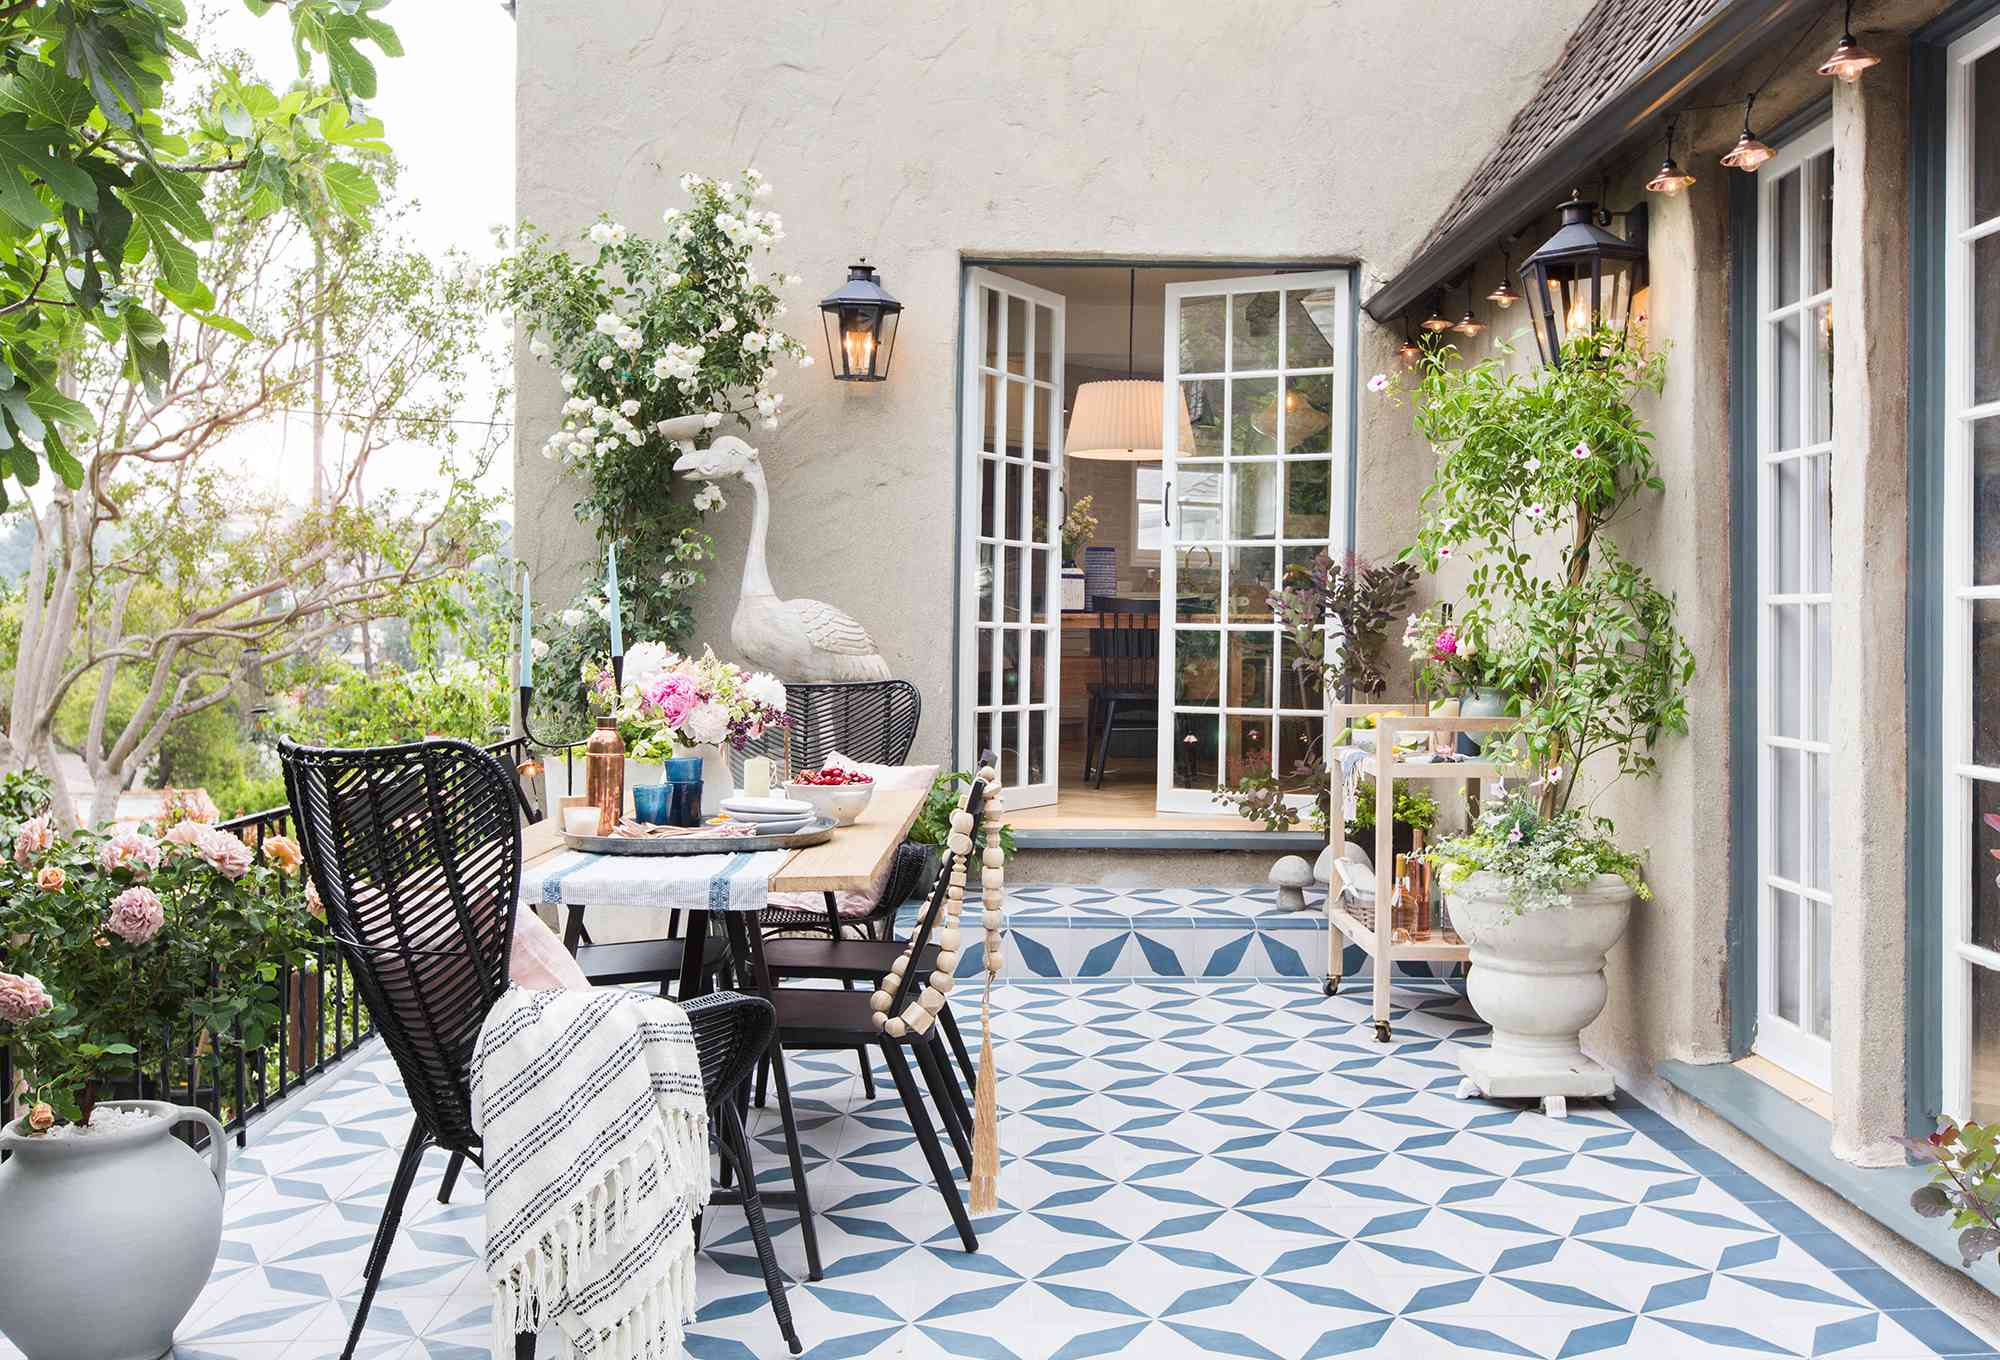 26 Patio Ideas That Will Have You Dining Al Fresco All Summer Long